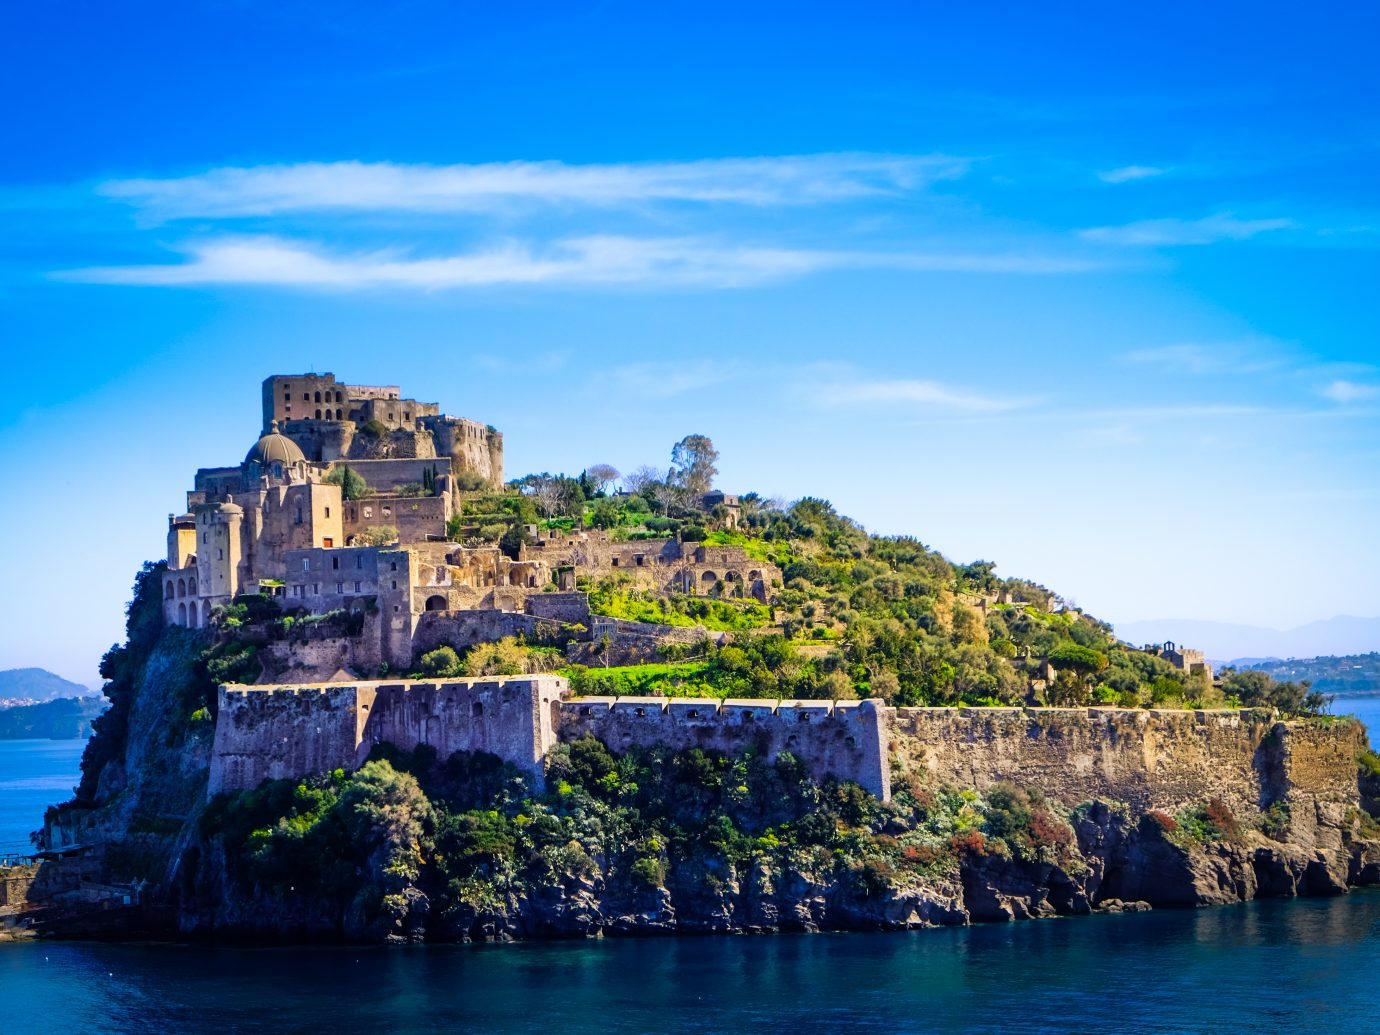 The aragonese castle in the island of ischia